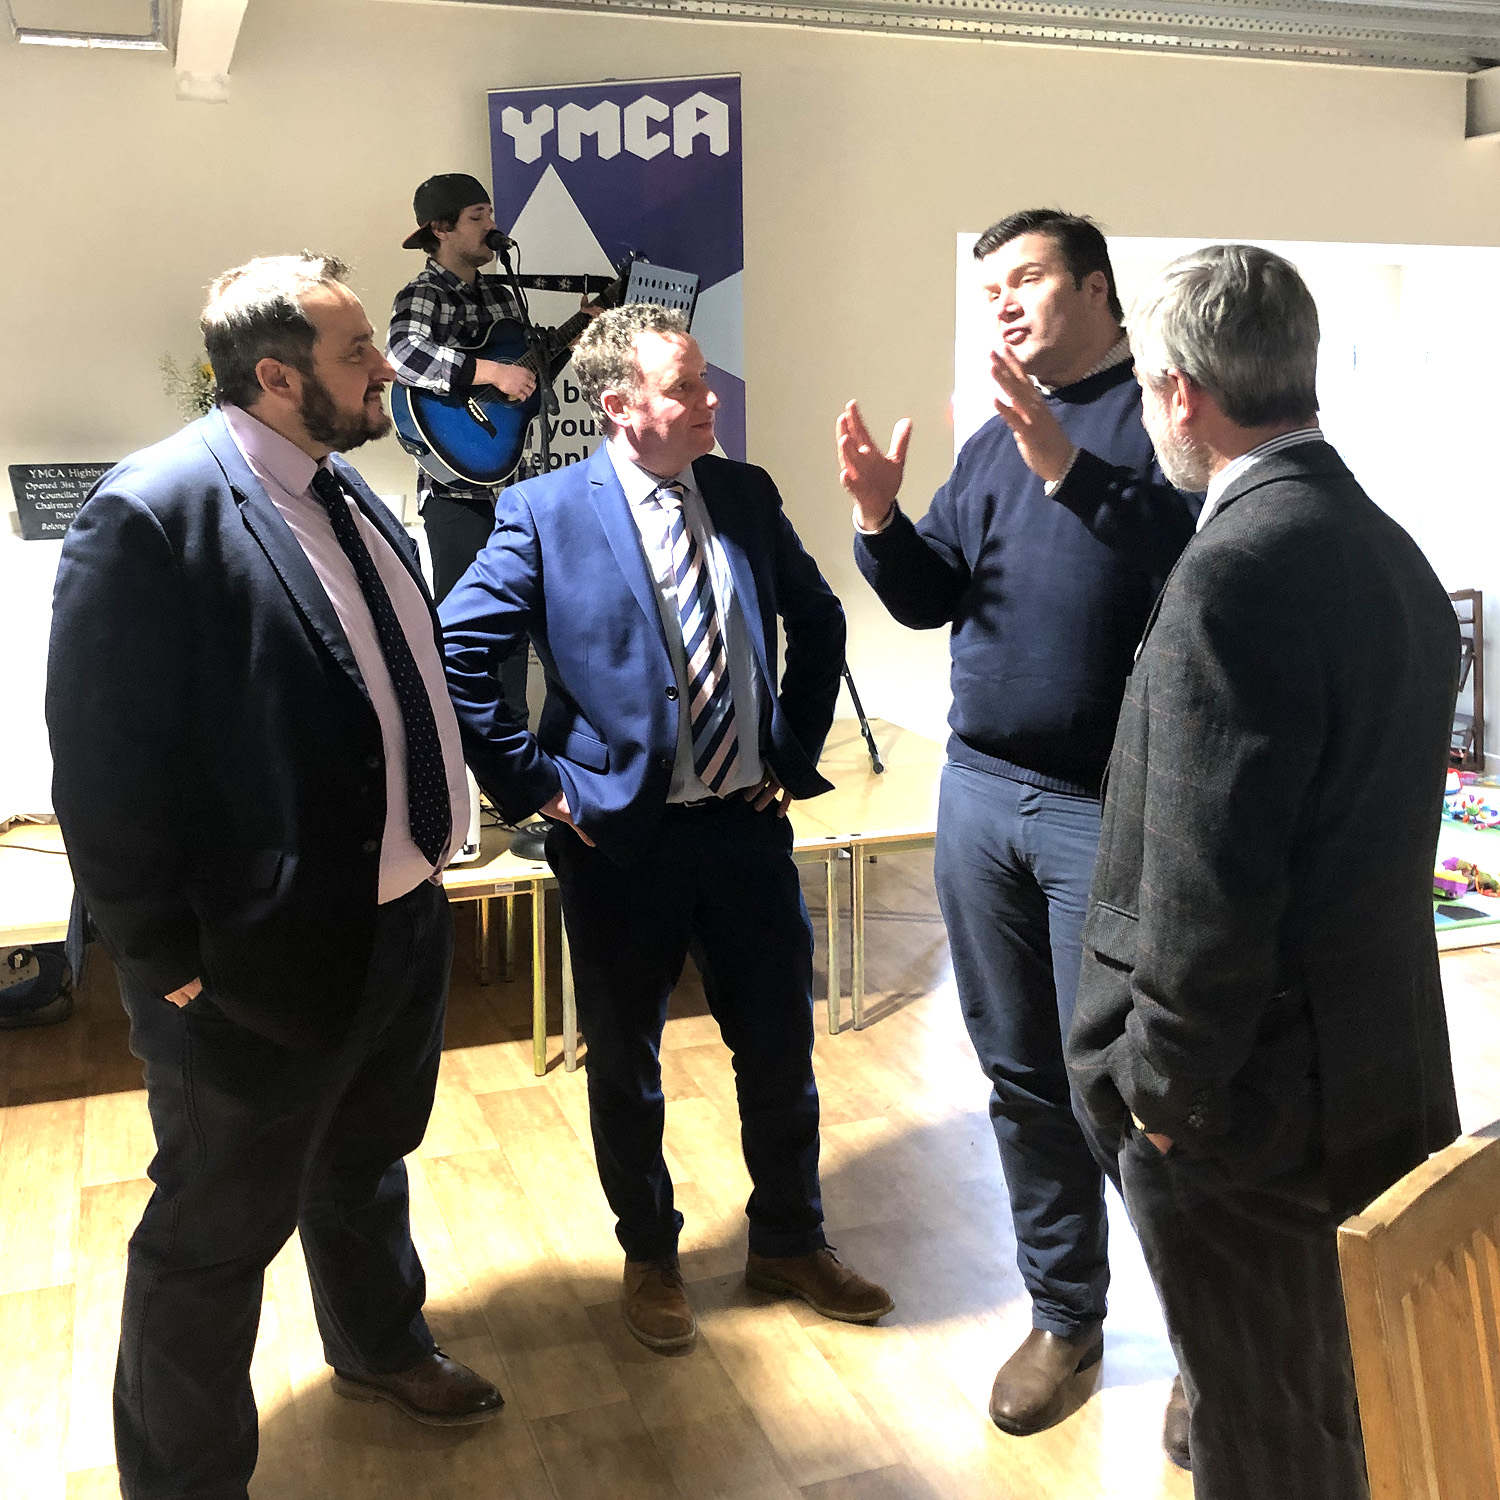 Rupert Perkins attends the official opening of YMCA Highbridge